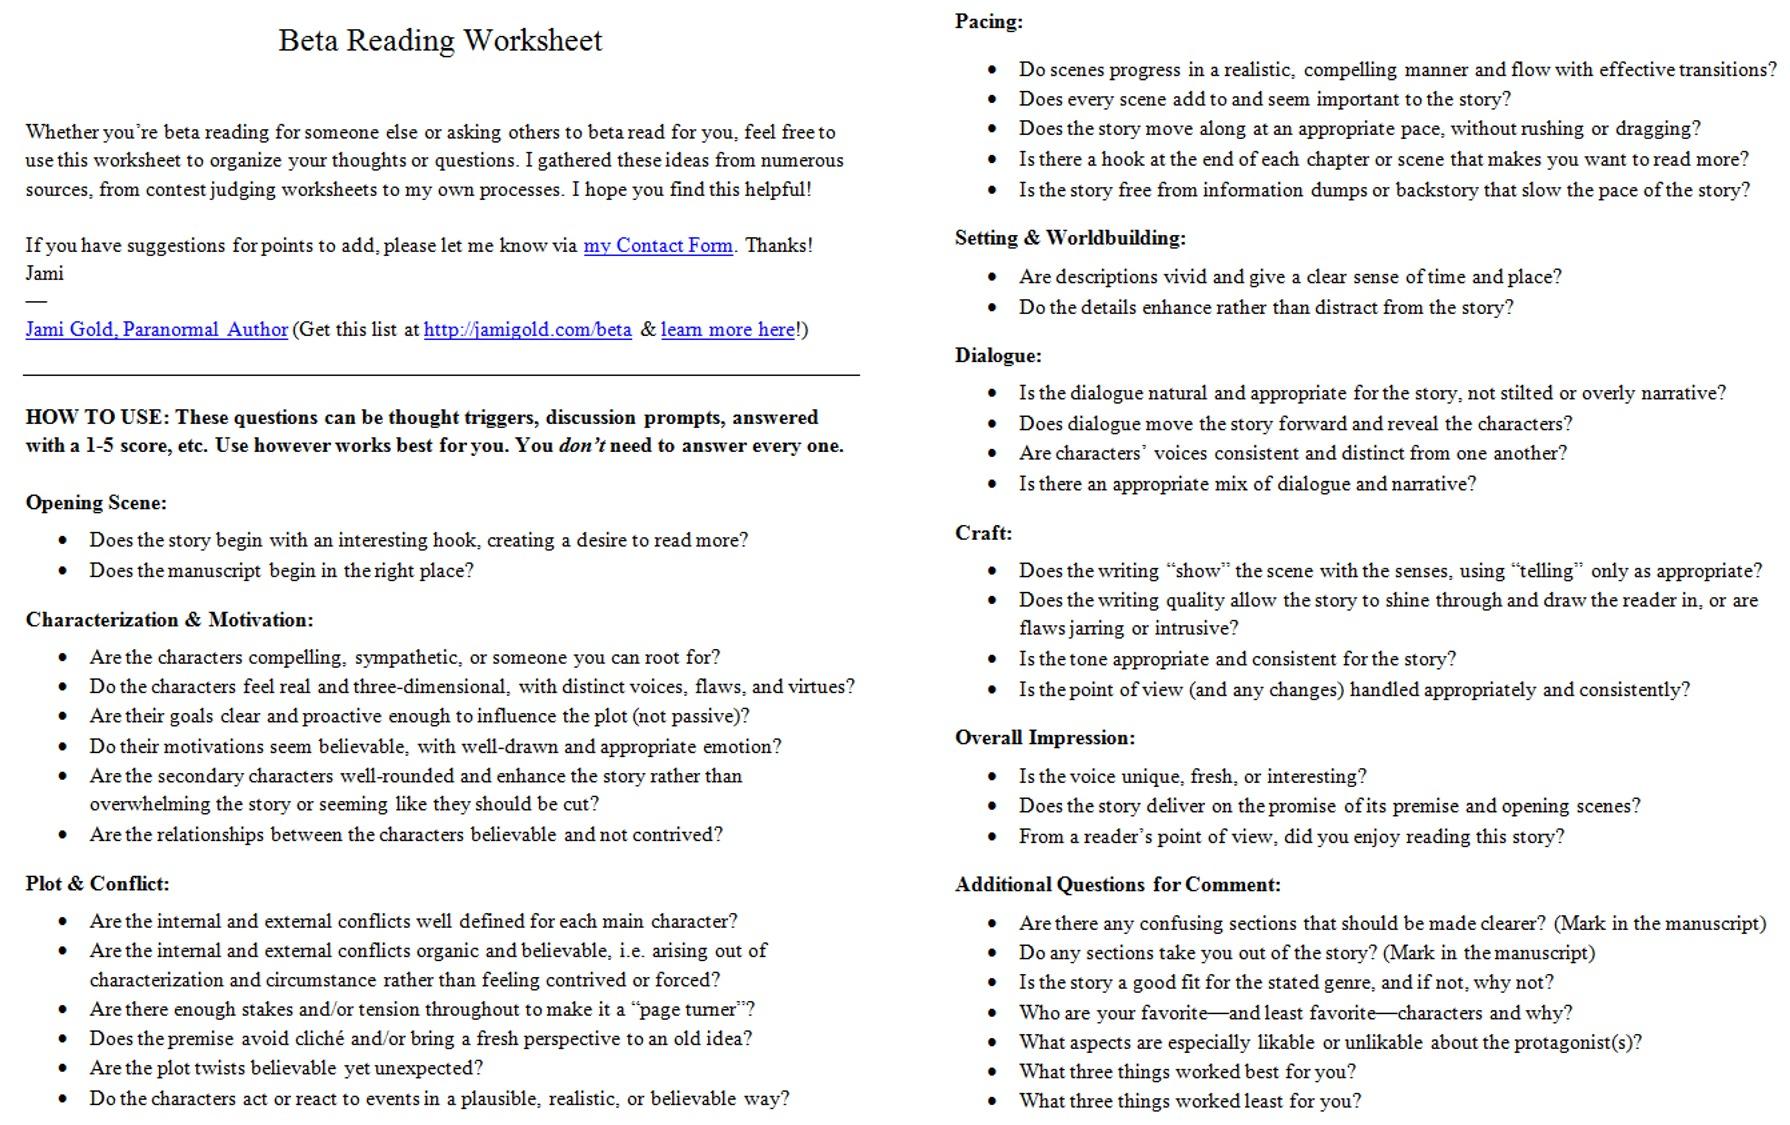 Aldiablosus  Splendid Worksheets For Writers  Jami Gold Paranormal Author With Engaging Screen Shot Of The Twopage Beta Reading Worksheet With Archaic Easy Percent Worksheets Also Making Tracing Worksheets In Addition Maths Worksheets Year  And Nsw Handwriting Worksheets As Well As Spot The Difference Worksheets For Kids Additionally Worksheets Of Conjunctions From Jamigoldcom With Aldiablosus  Engaging Worksheets For Writers  Jami Gold Paranormal Author With Archaic Screen Shot Of The Twopage Beta Reading Worksheet And Splendid Easy Percent Worksheets Also Making Tracing Worksheets In Addition Maths Worksheets Year  From Jamigoldcom